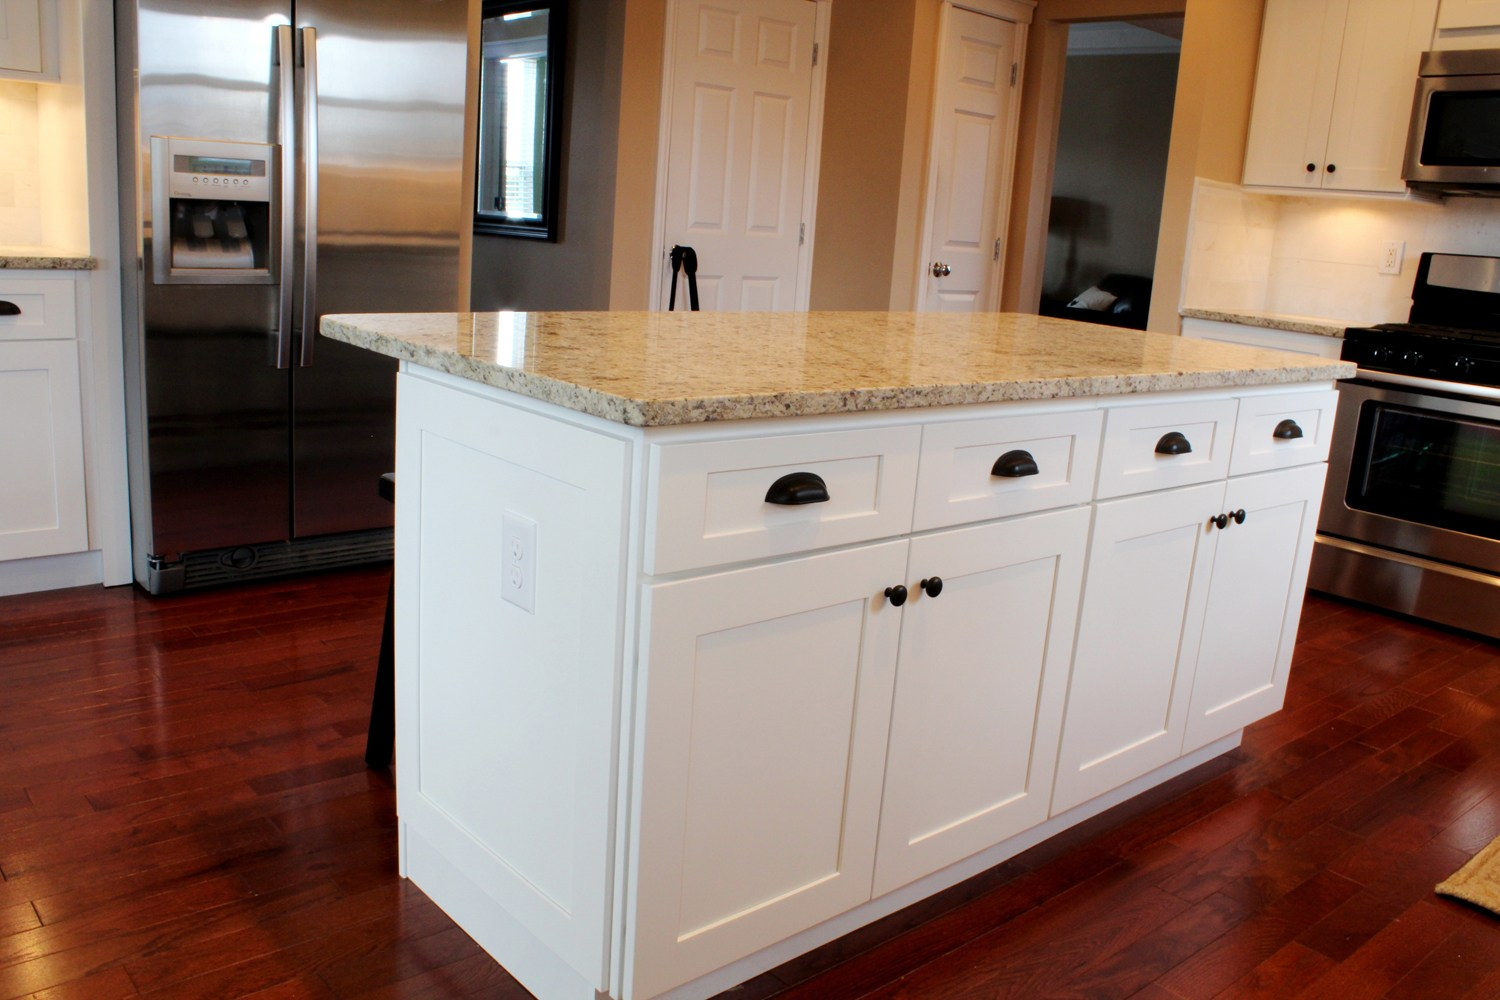 kitchen cabinet doors with glass best pull down faucet customer photos - acmecabinetdoors.com